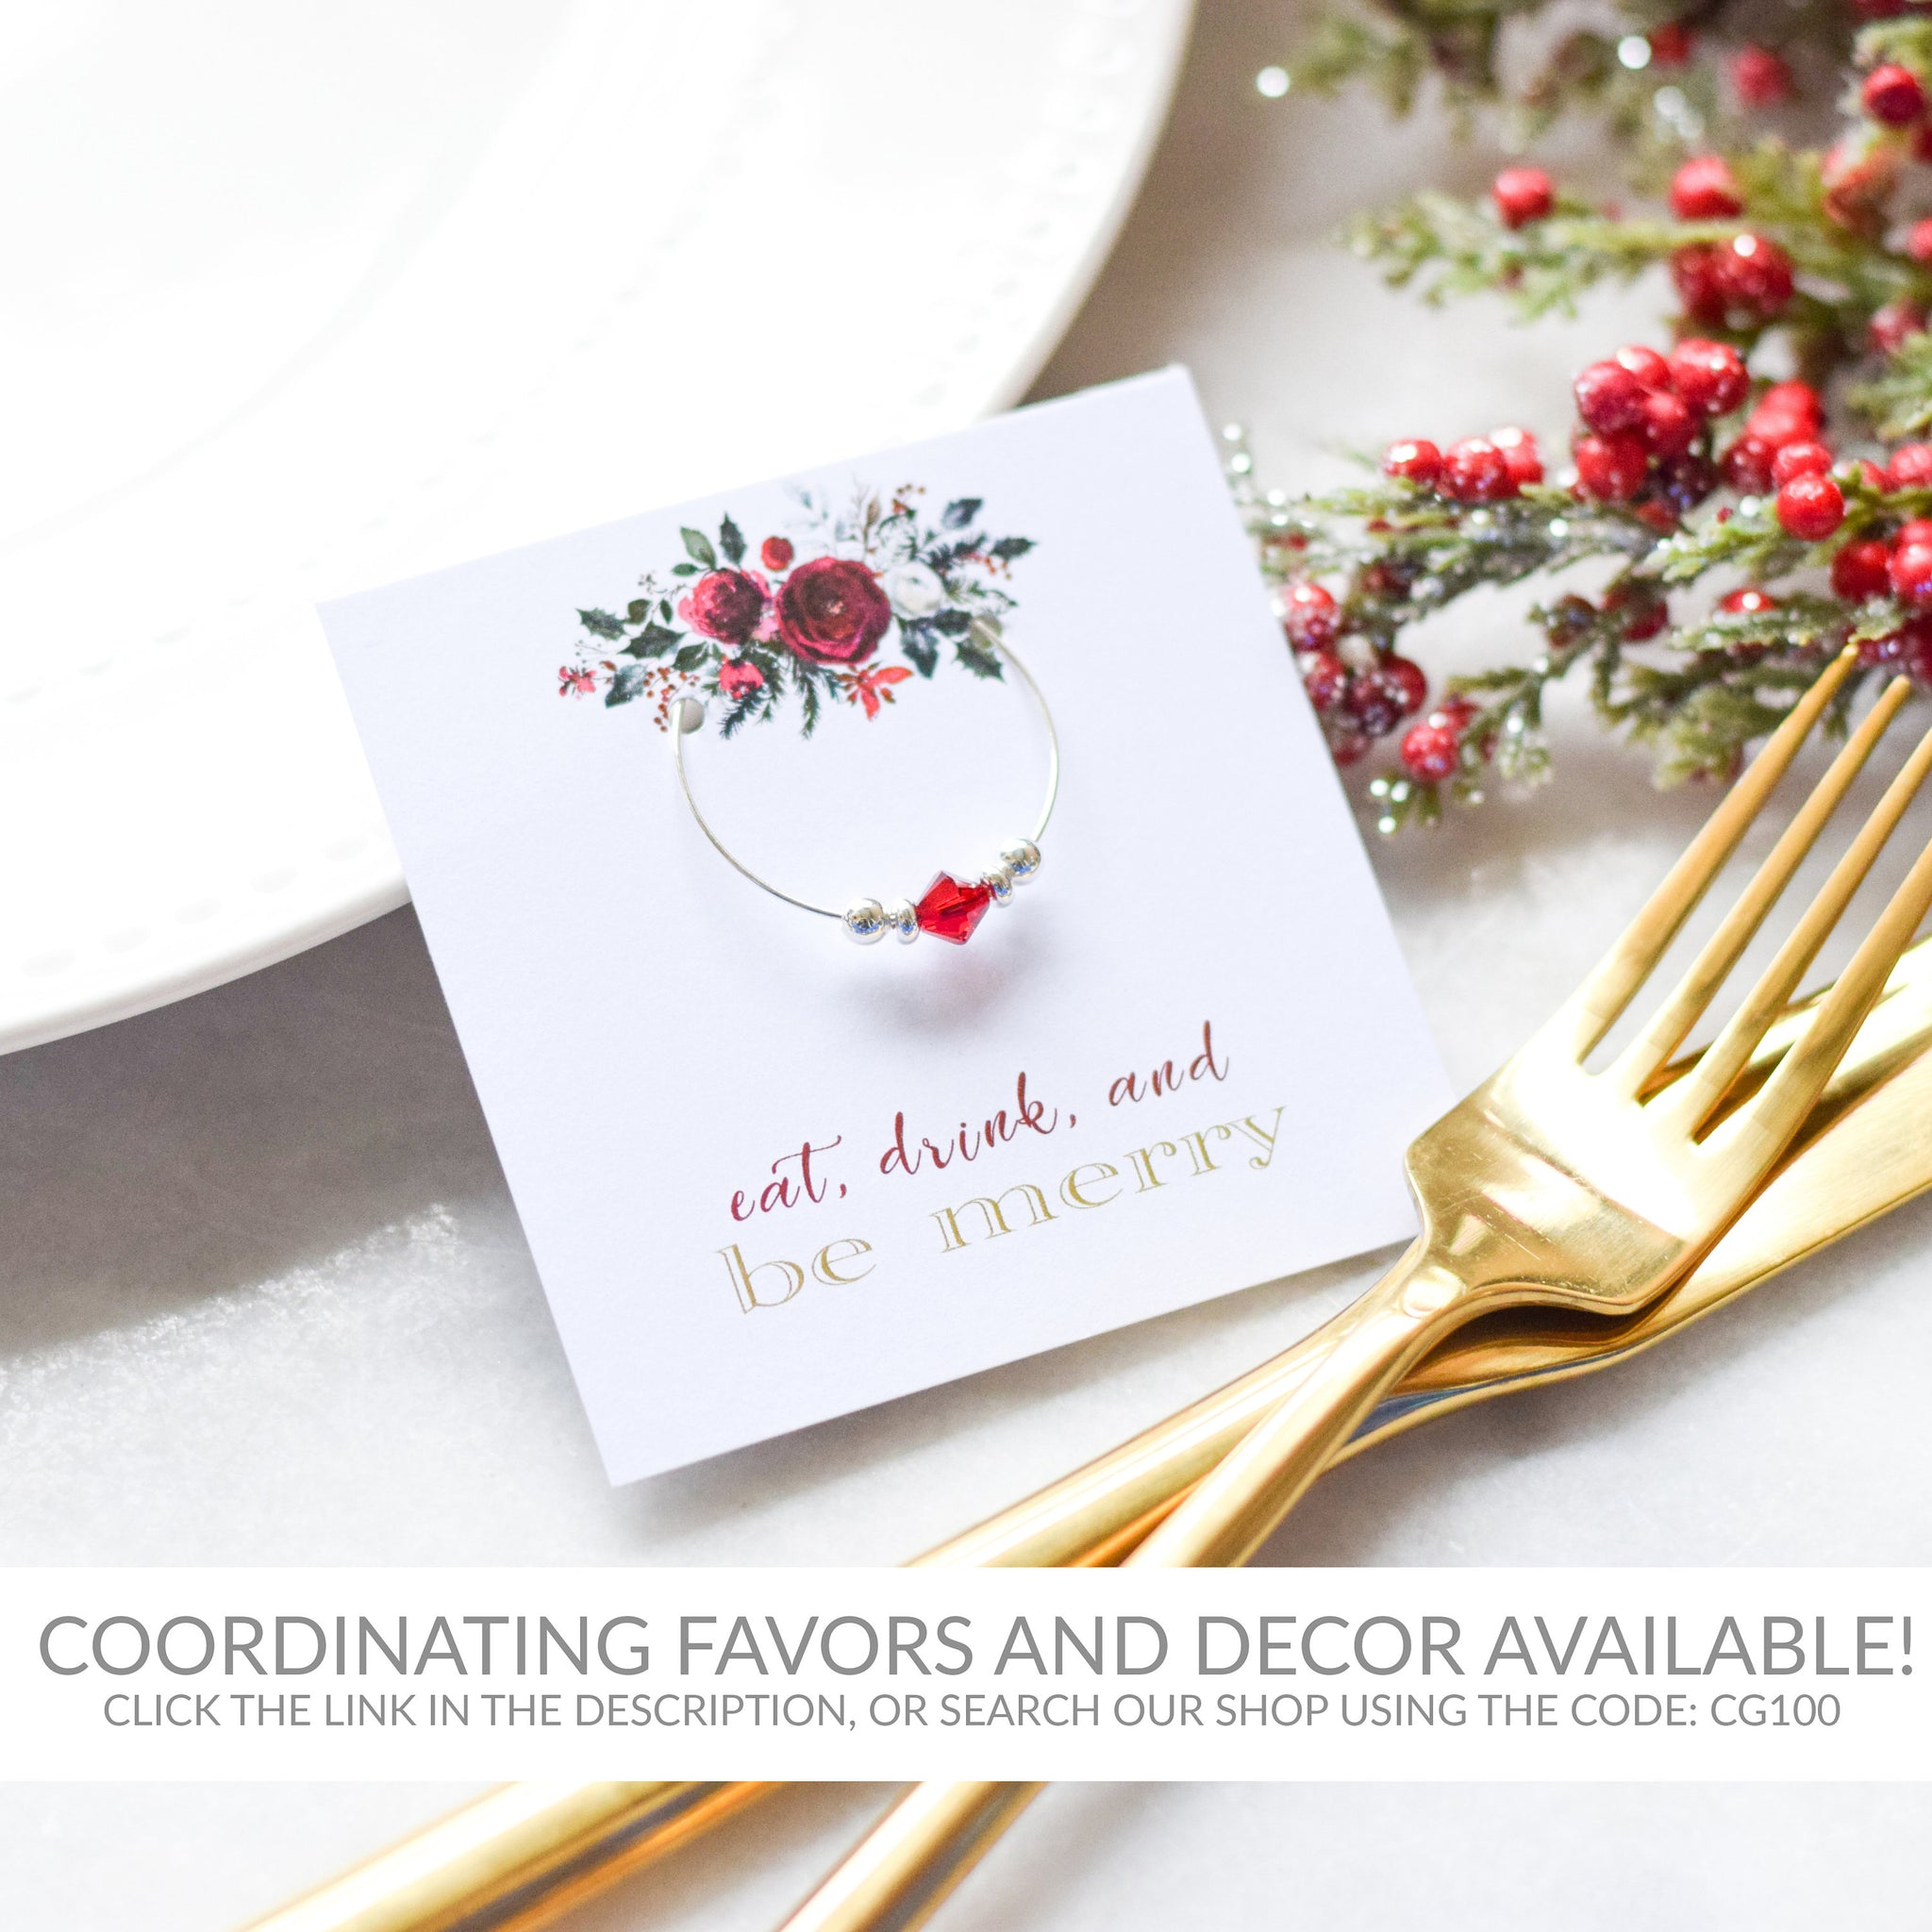 Christmas Wedding Table Numbers 1-50, Holiday Table Number Cards, Winter Wedding Table Numbers 4x6 and 5x7, Printable DOWNLOAD - CG100 - @PlumPolkaDot